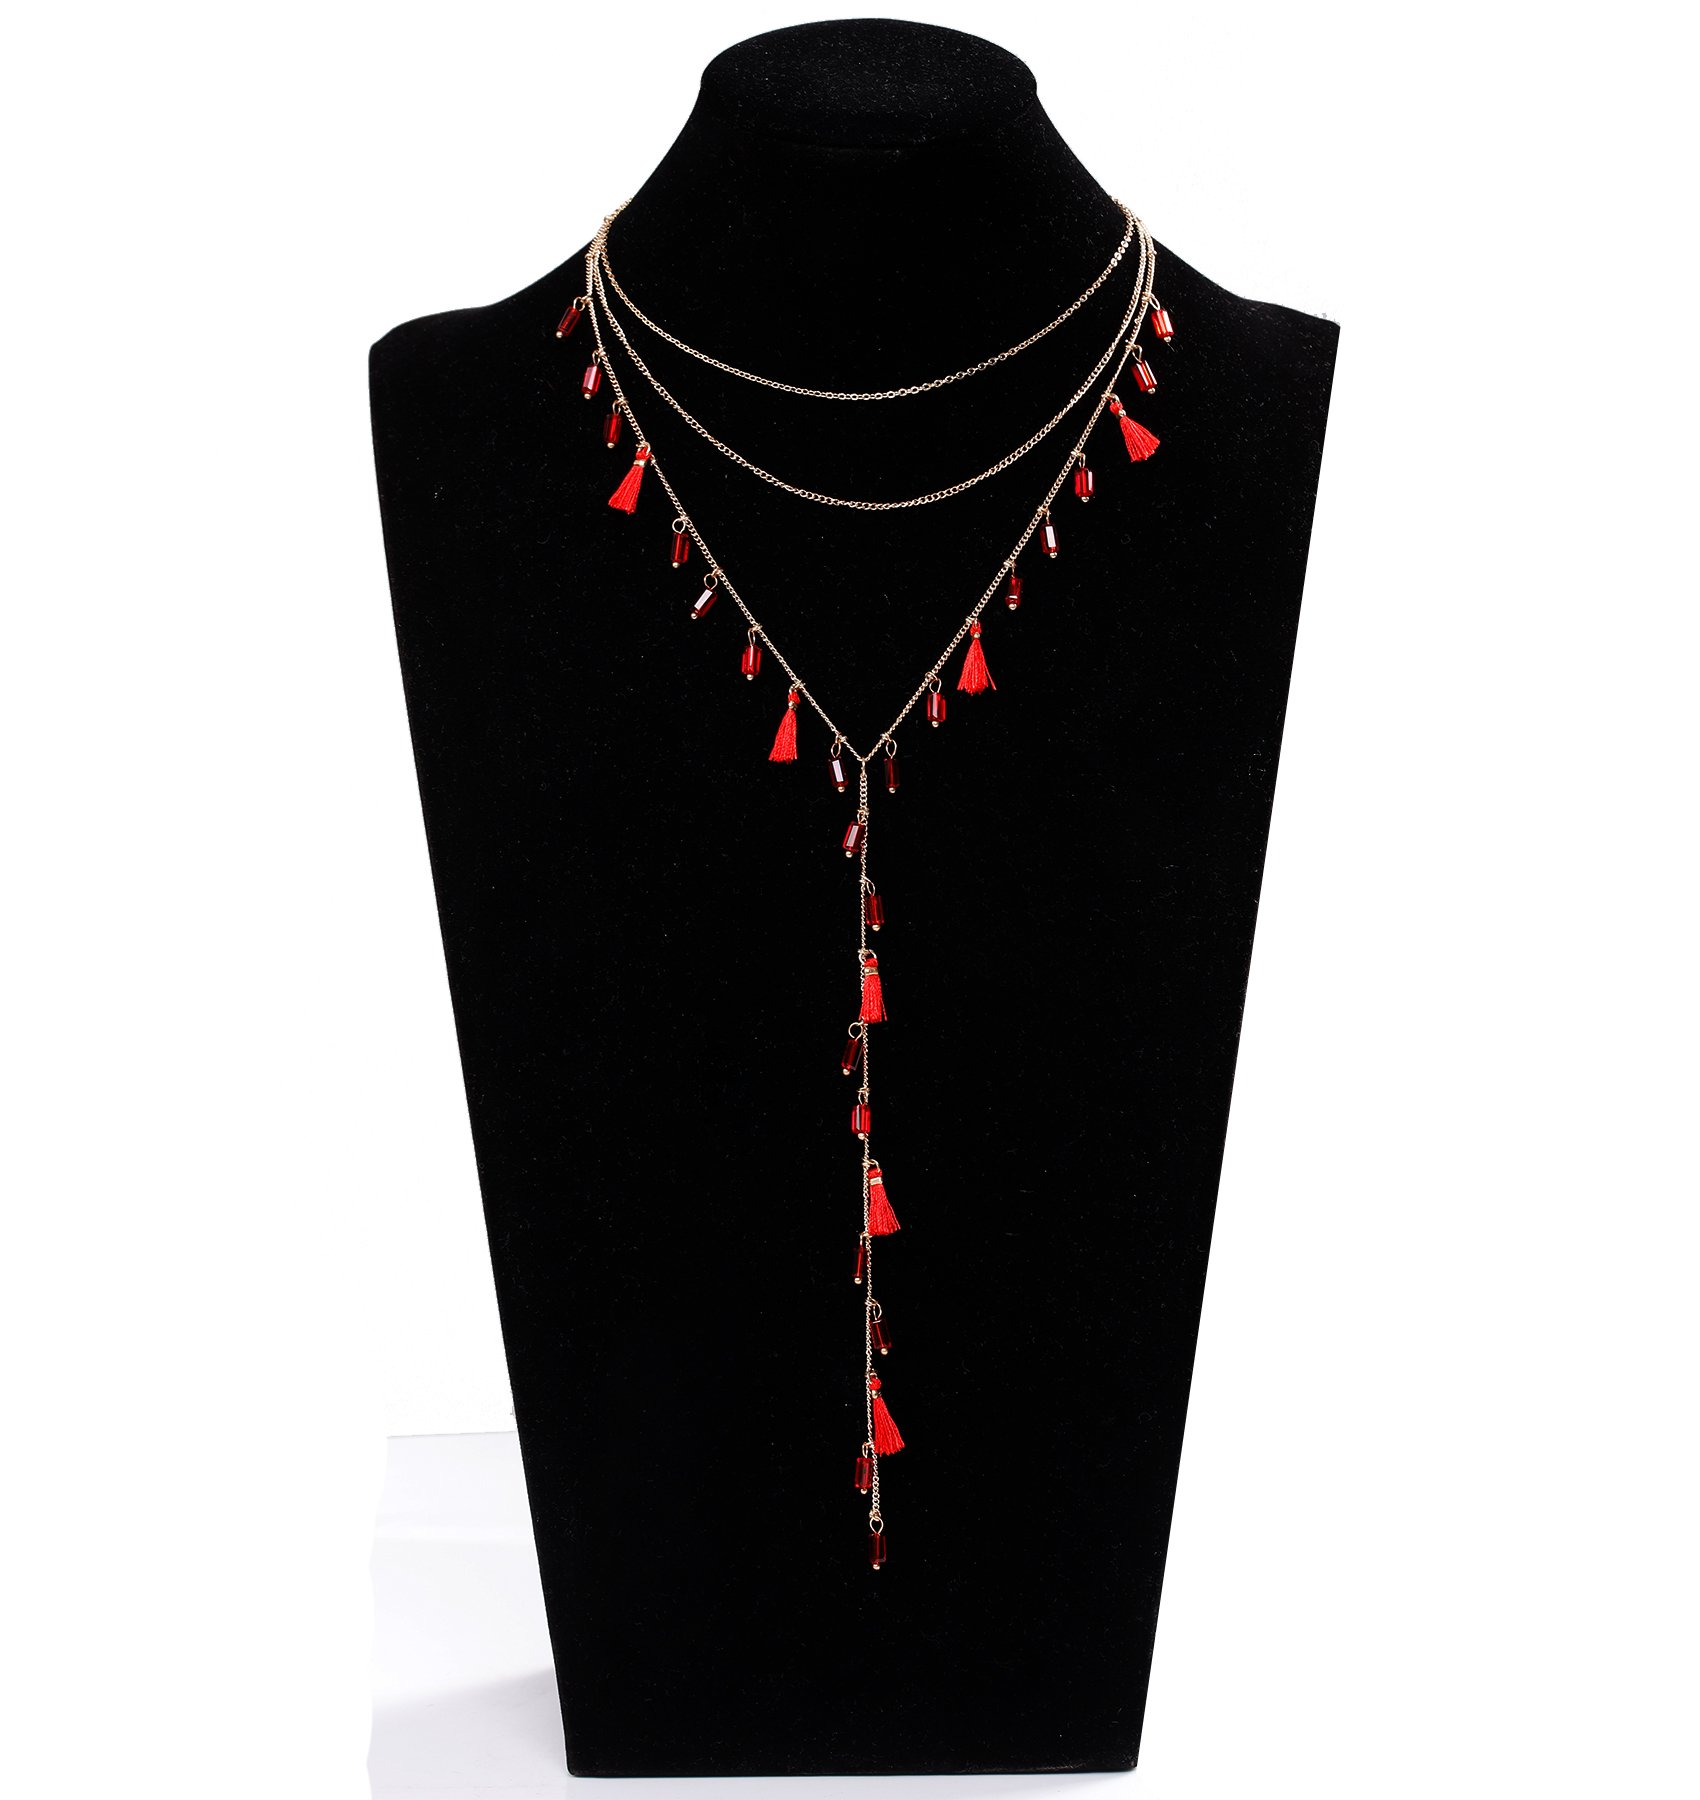 YOUMI Layered Choker Necklace Mini Tassel Beads Drop Long Chain Fringe Tassel Y Necklaces for Women (Red)